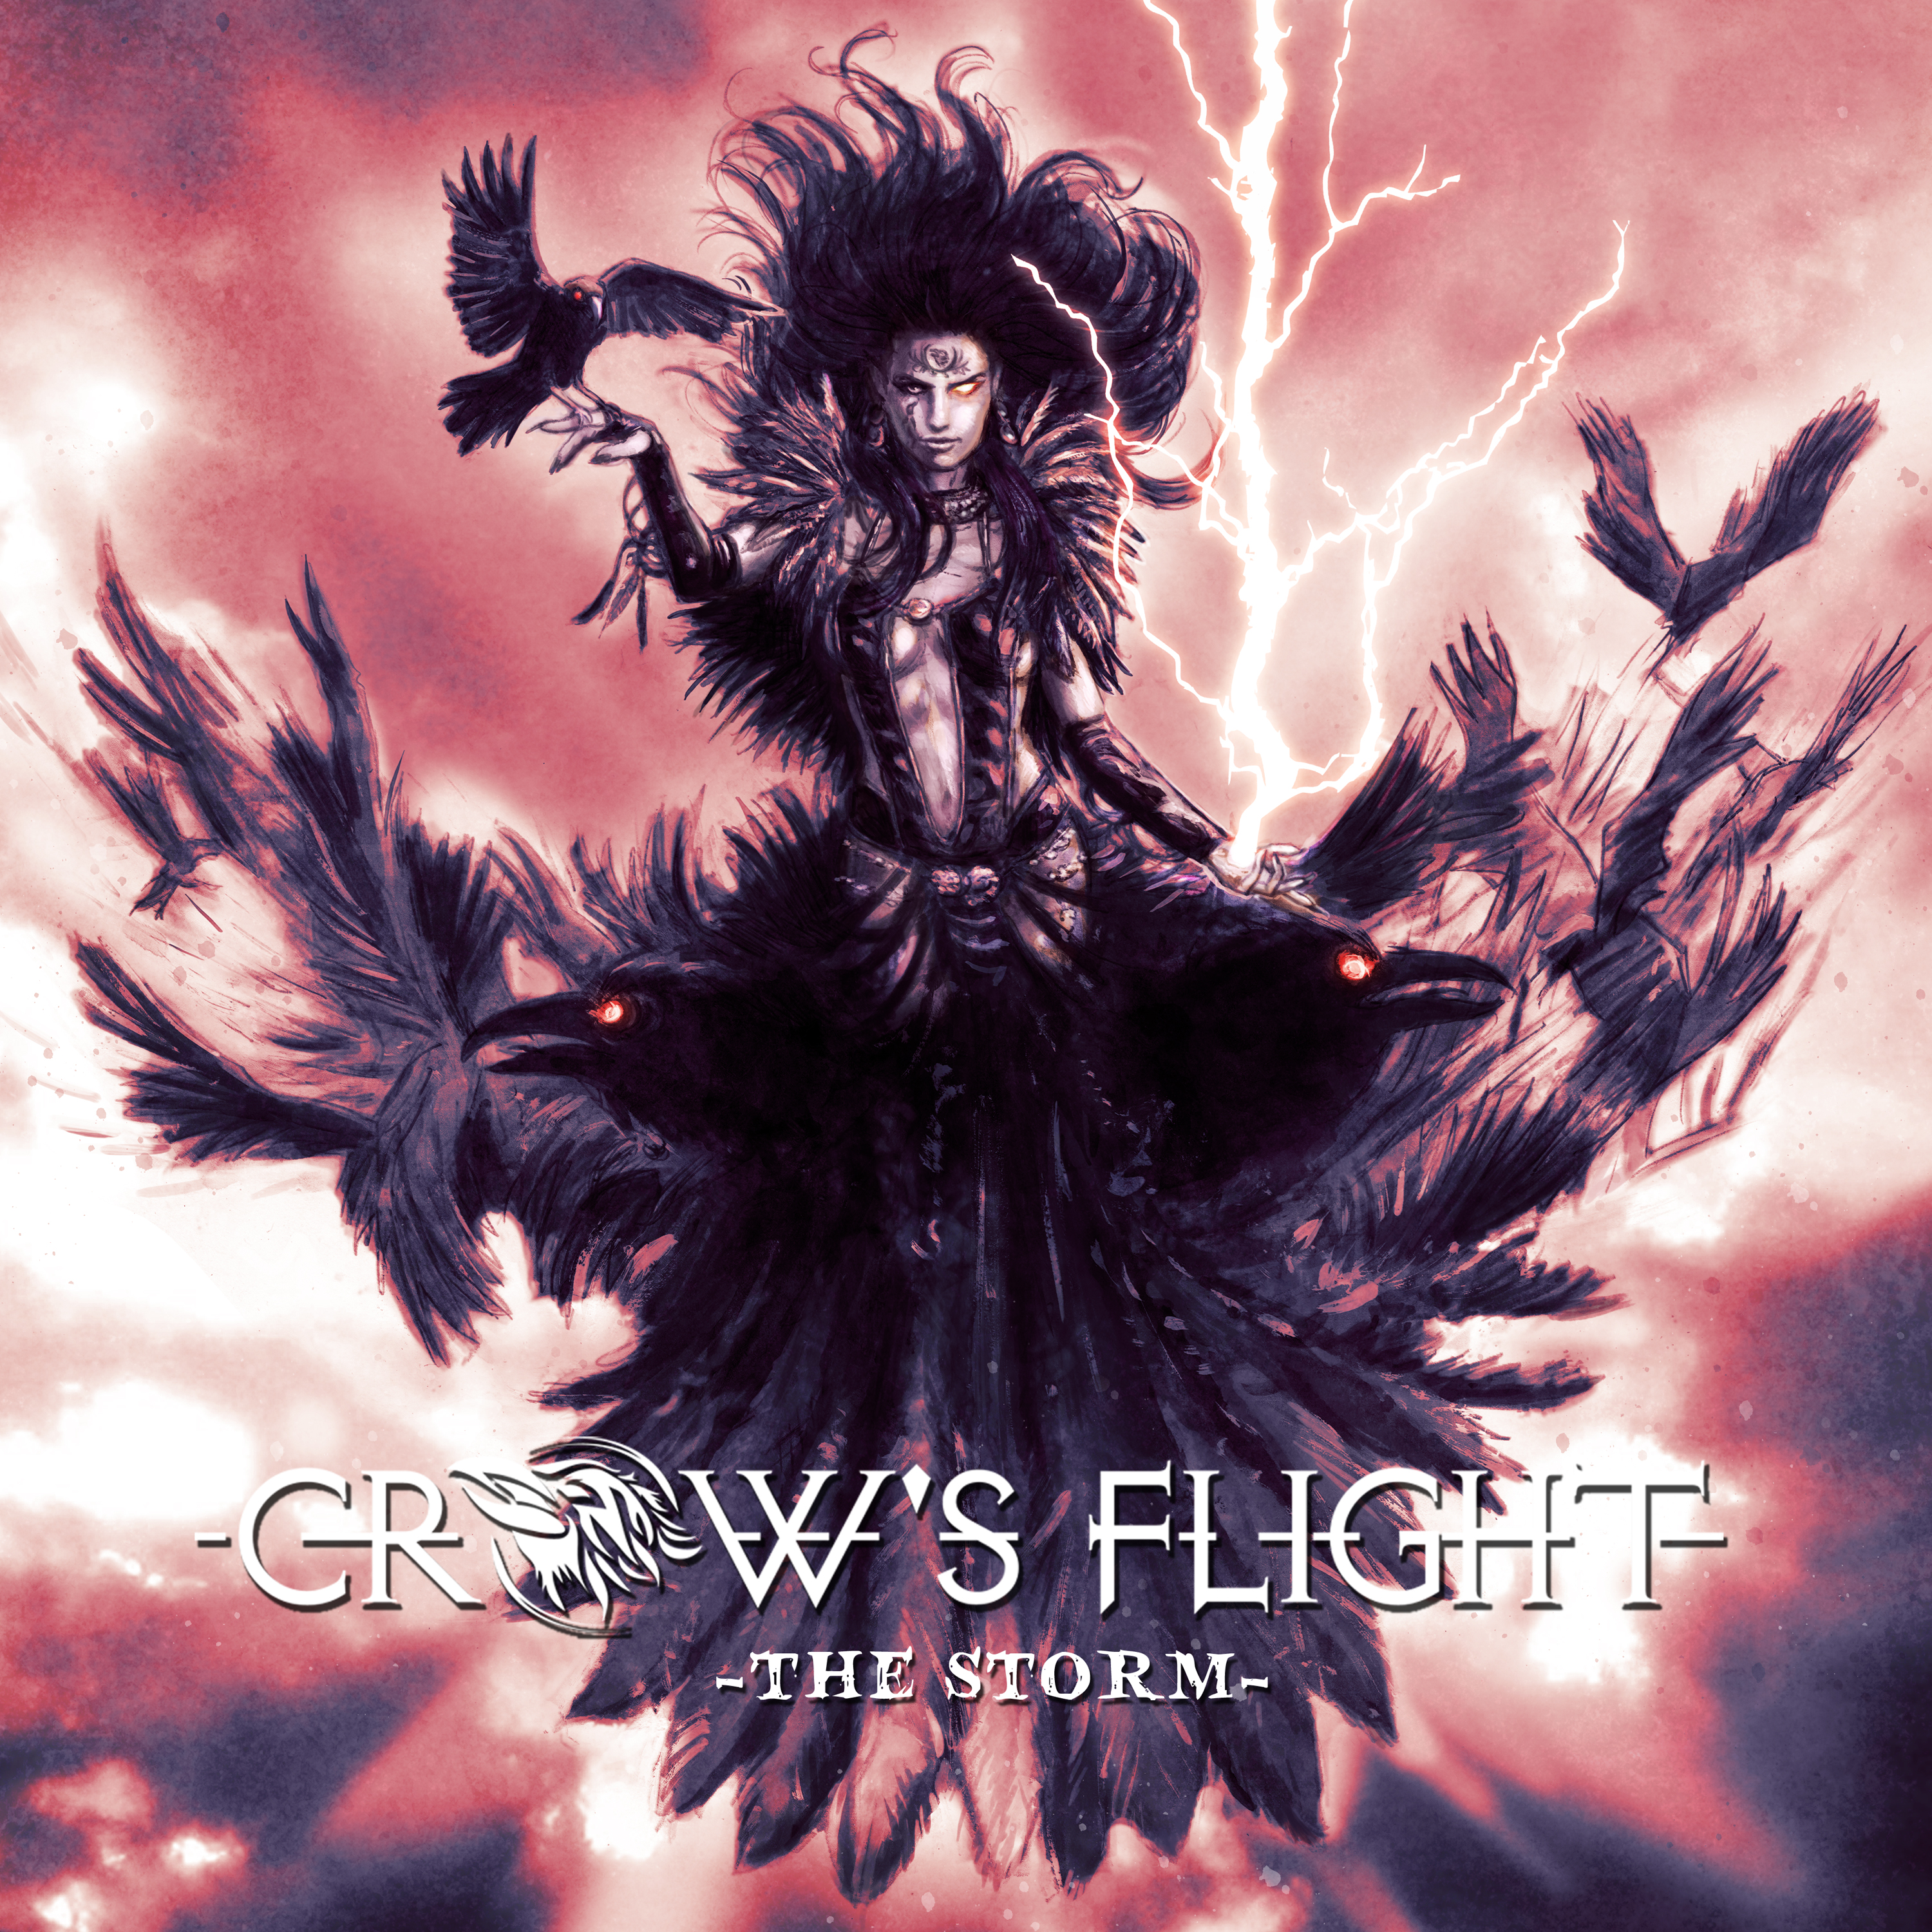 DVD/Blu-ray-Review: Crow's Flight - The Storm